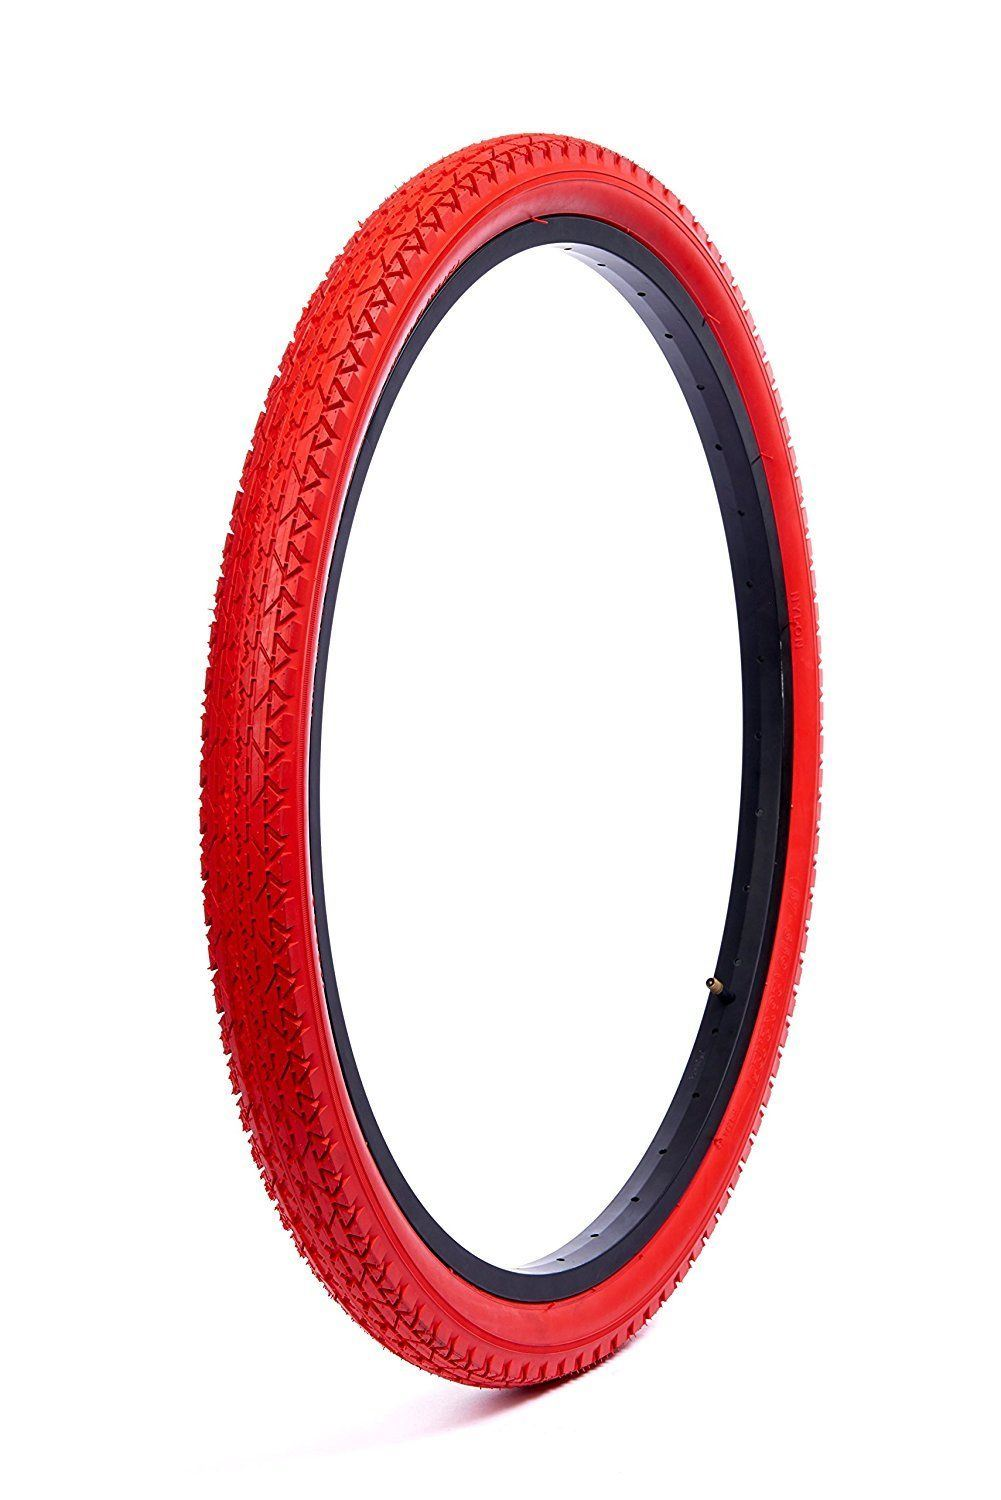 WANDA 26 x 2.125 BICYCLE TIRE BEACH CRUISER BIKE DIAMOND VINTAGE P-123A FURY RED